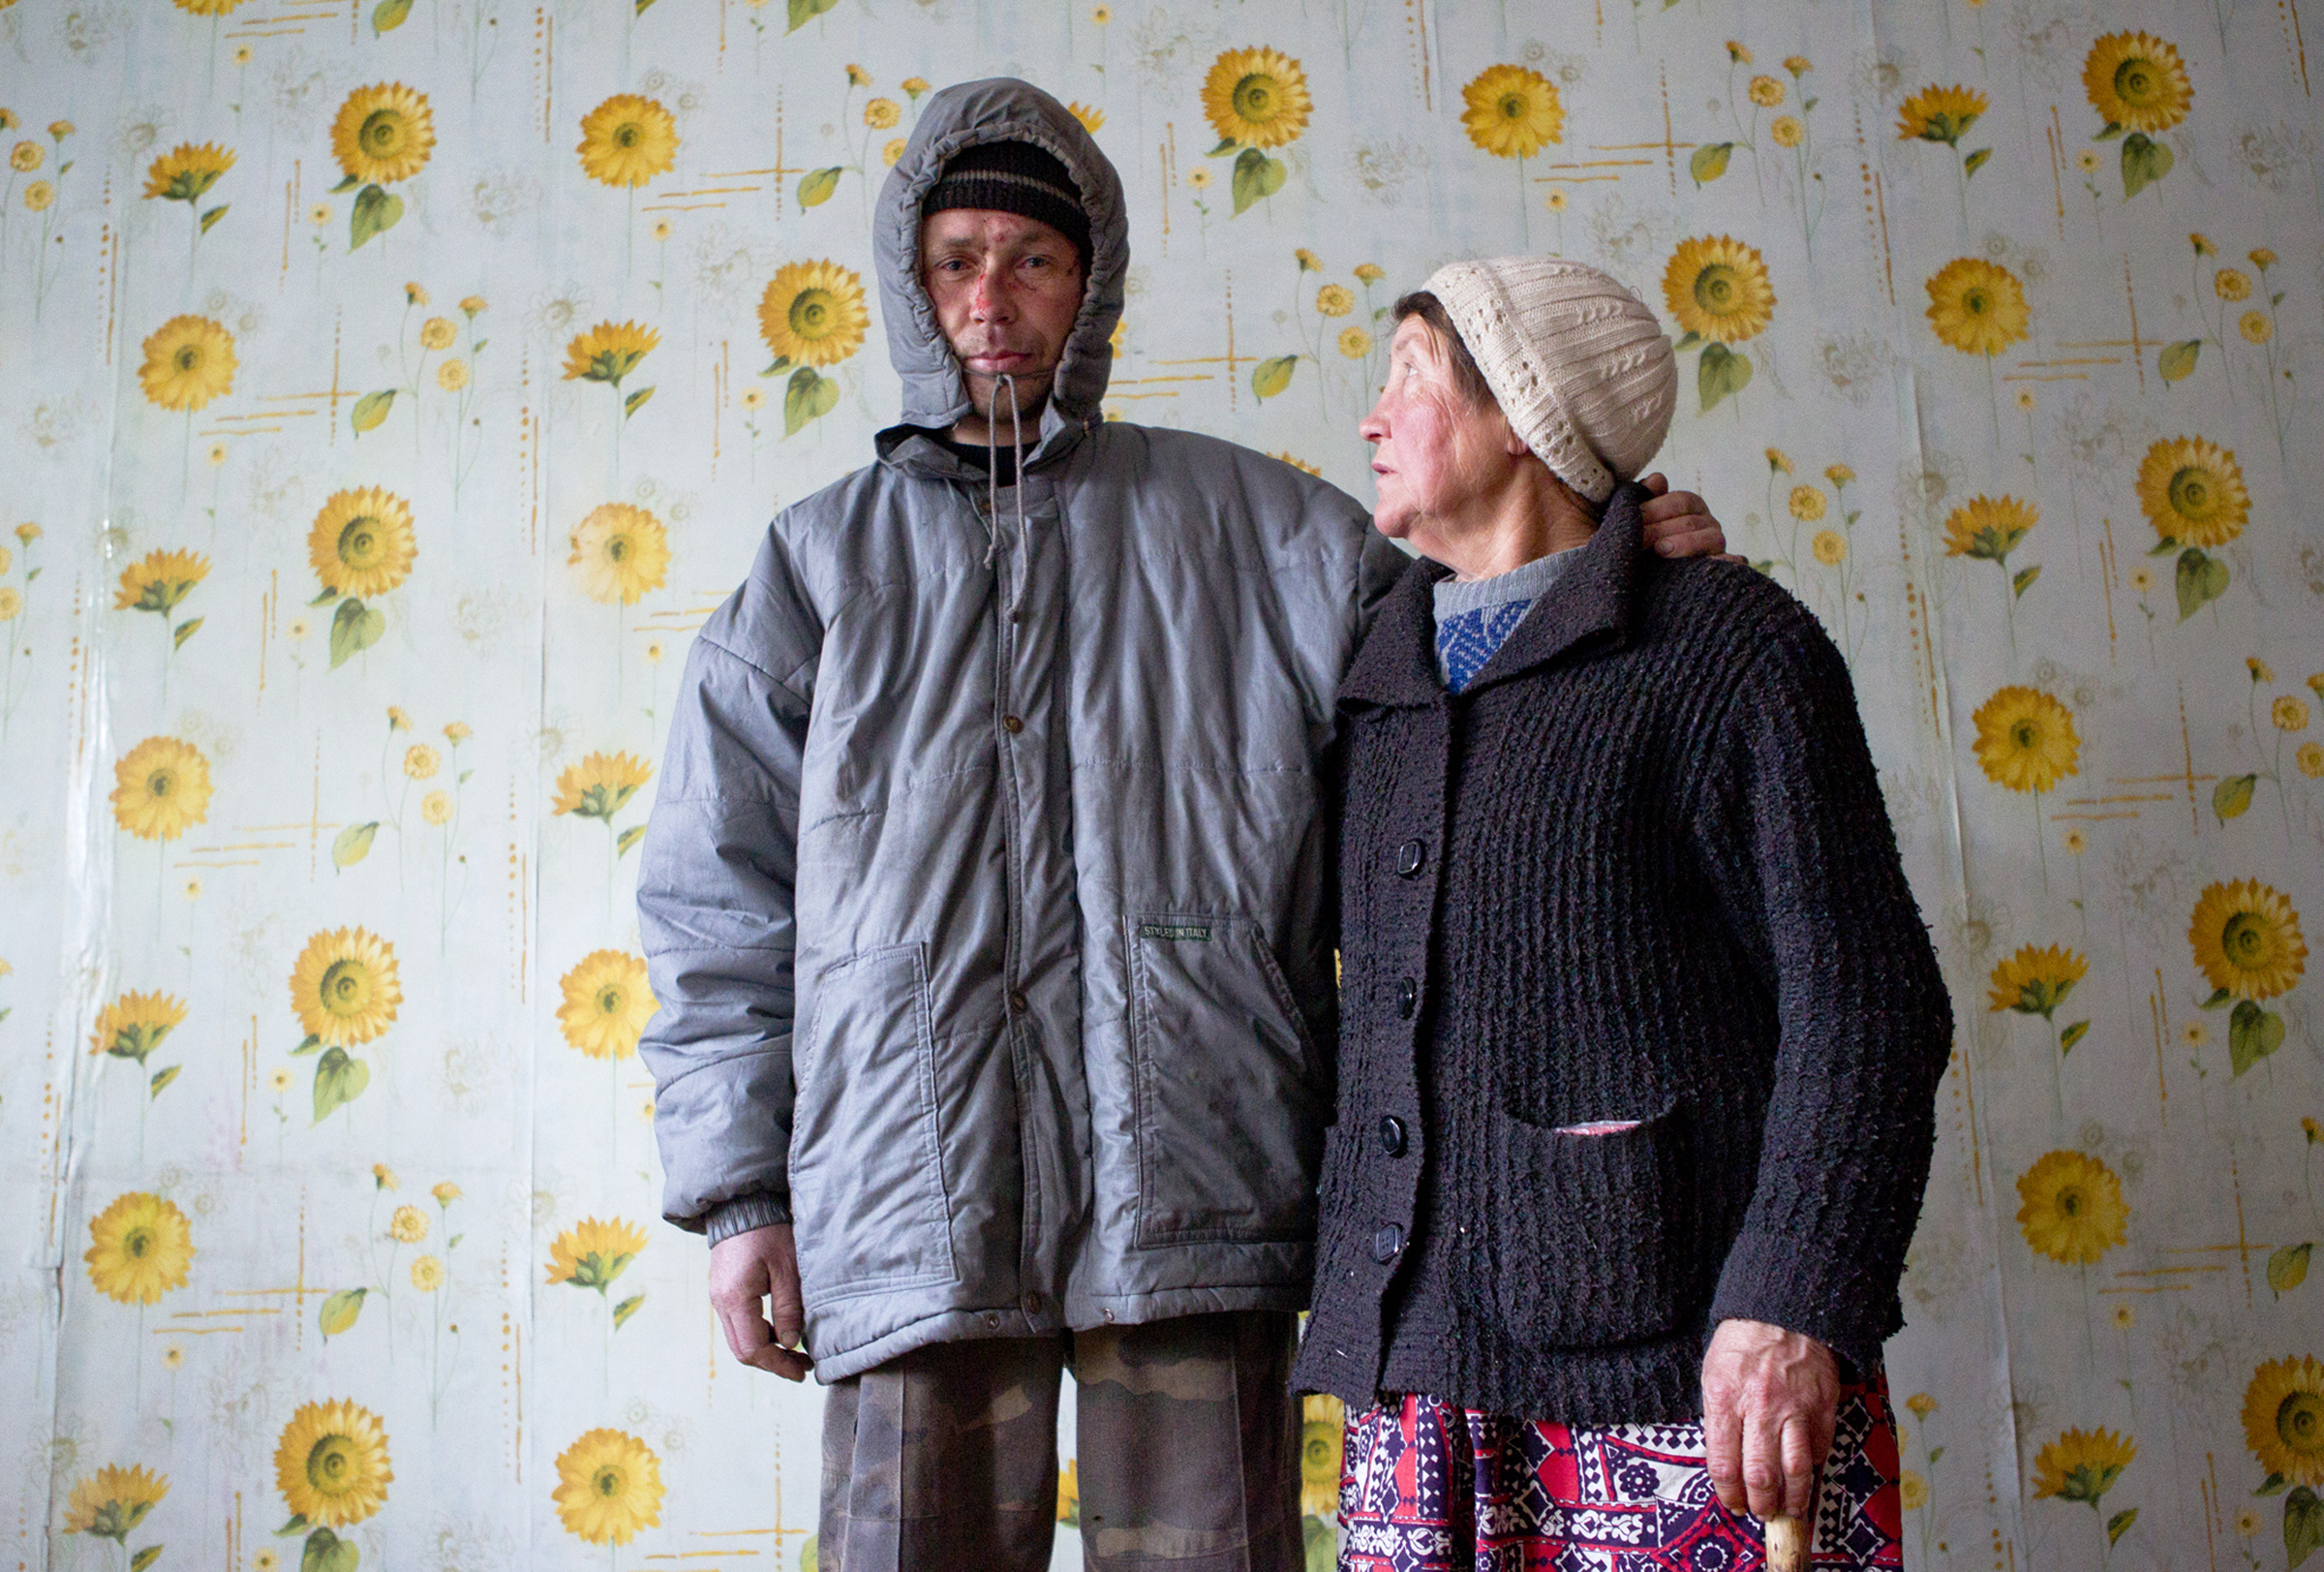 Evgeniy, and his mother, Elena Andreava, wait for food in the dining hall of the Kolotomoto homeless shelter in Bishkek. They have been homeless, battling Bishkek's harsh winters, for over ten years.